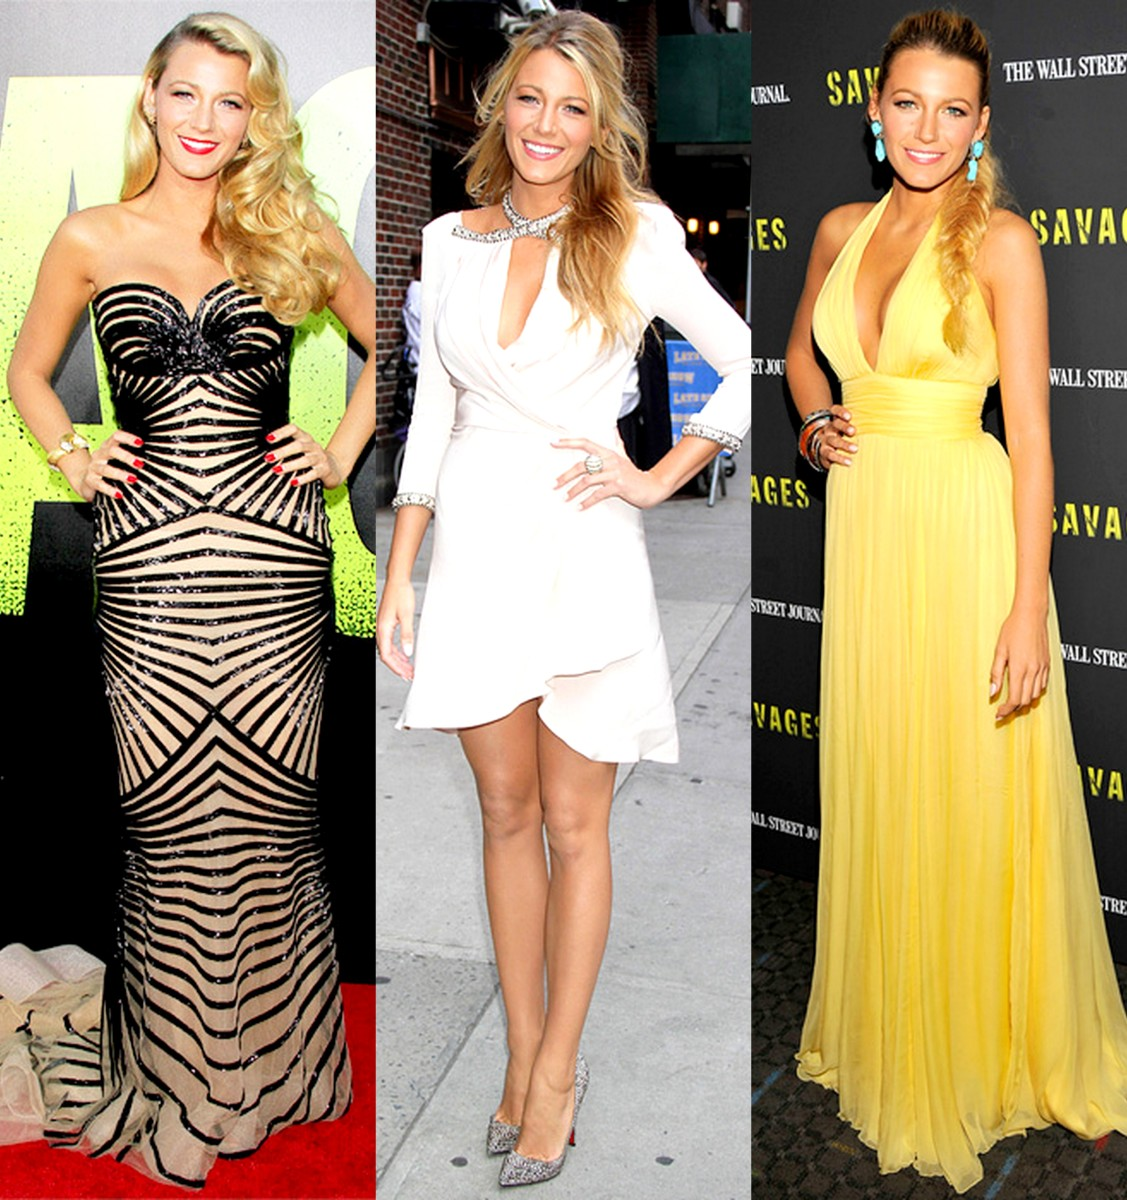 It's A Shimmering Chic New Week: Featuring Eight Amazing Red Carpet Looks!